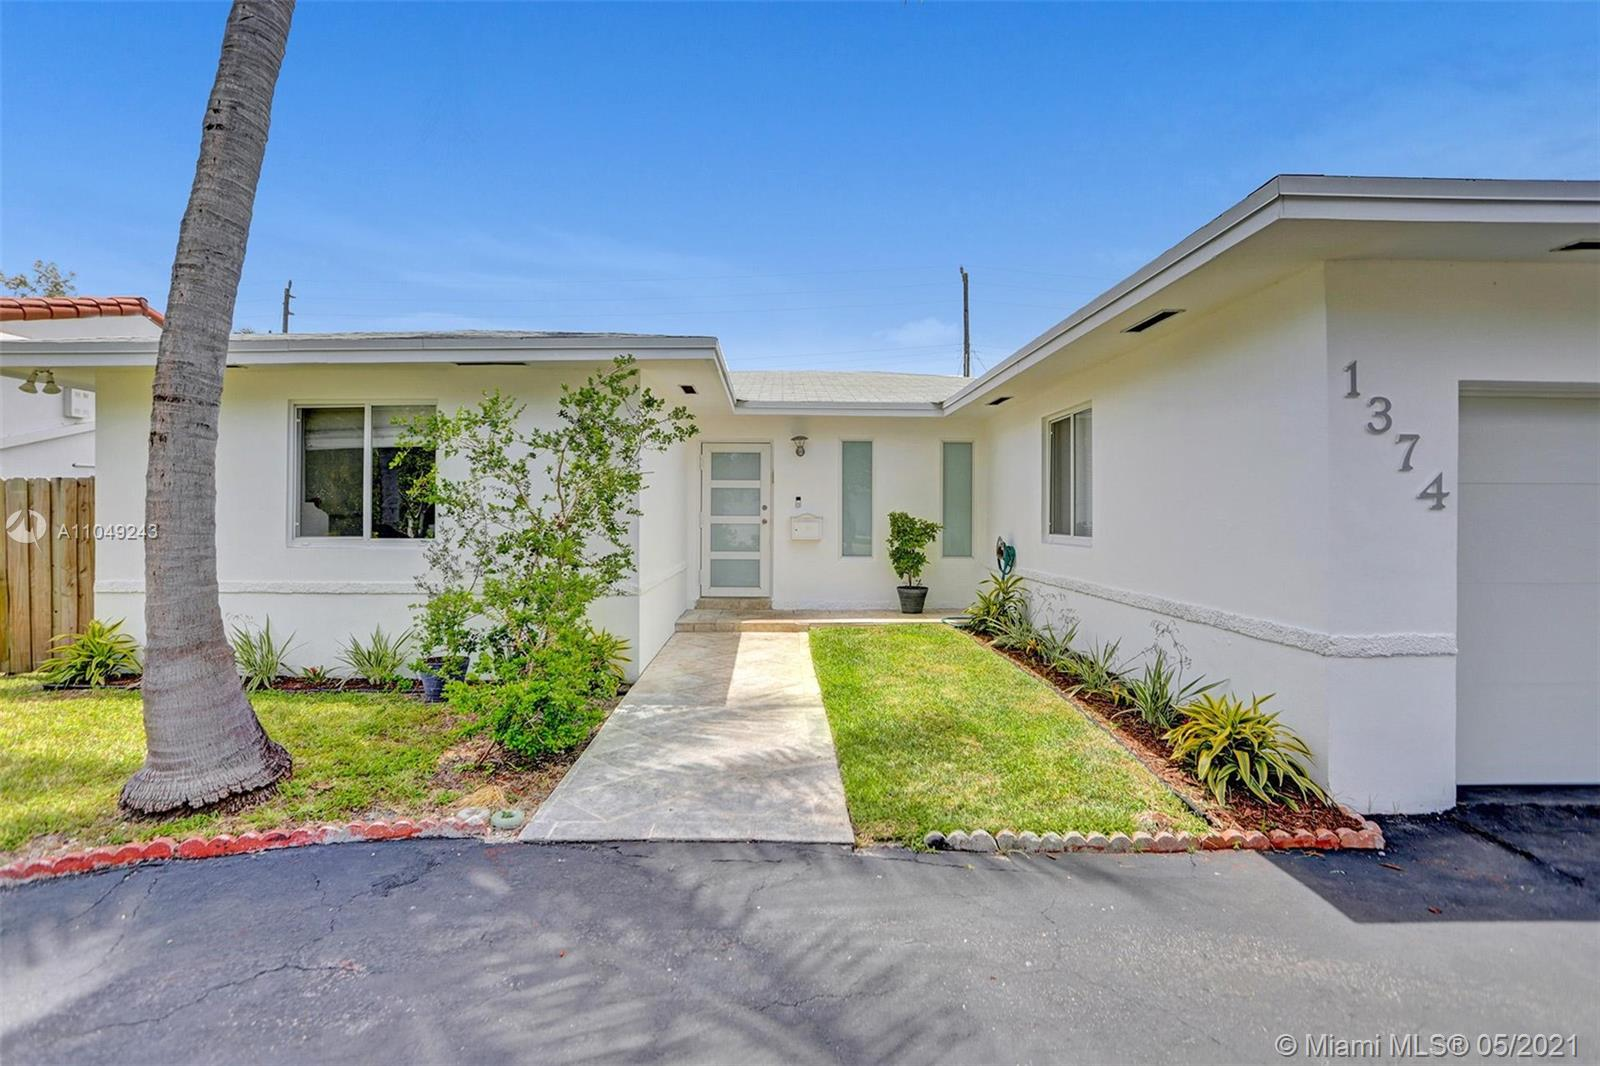 Upgraded 3 bedroom + den /2 bath in Normandy Isle. Great location, walkability and bike paths to the Beach just blocks away. Split plan layout with open living room, kitchen, spacious garage and brand new 320 SF screened in patio. Upgrades include: New roof in 2015, hurricane impact windows and doors; In 2016 new central A/C; in 2018 back yard fence; in 2020 master bathroom, new 80 gallon water heater, washer/dryer and insulated/hurricane impact garage door and opener. Circular driveway and great size back yard with fruit trees and space for a pool. A must see!